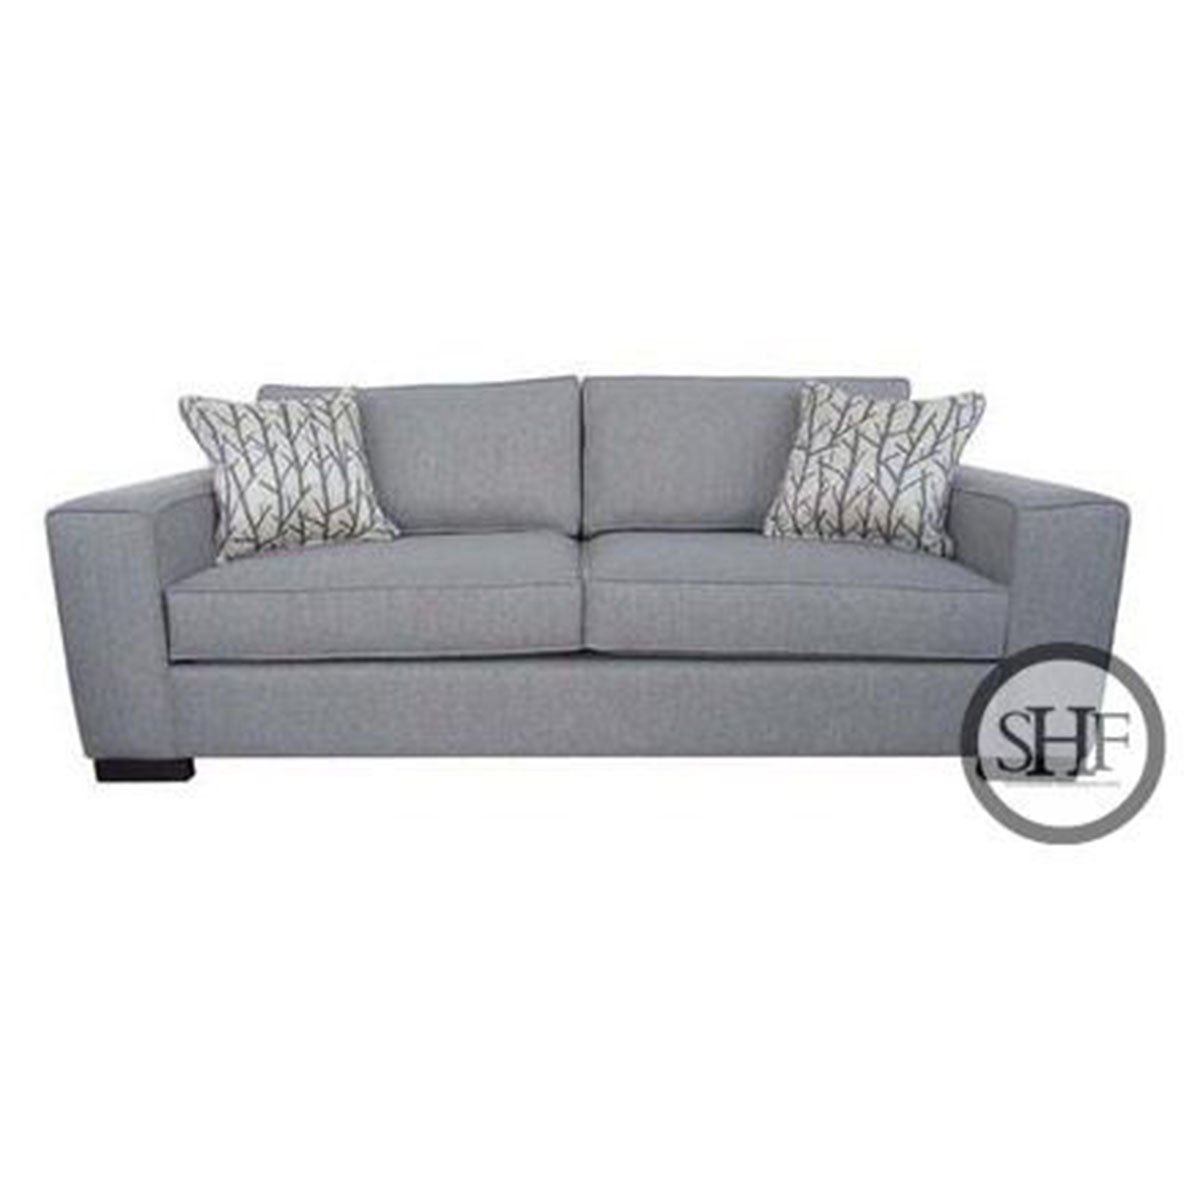 Custom Frank Sofa Made in Canada | Showhome Furniture